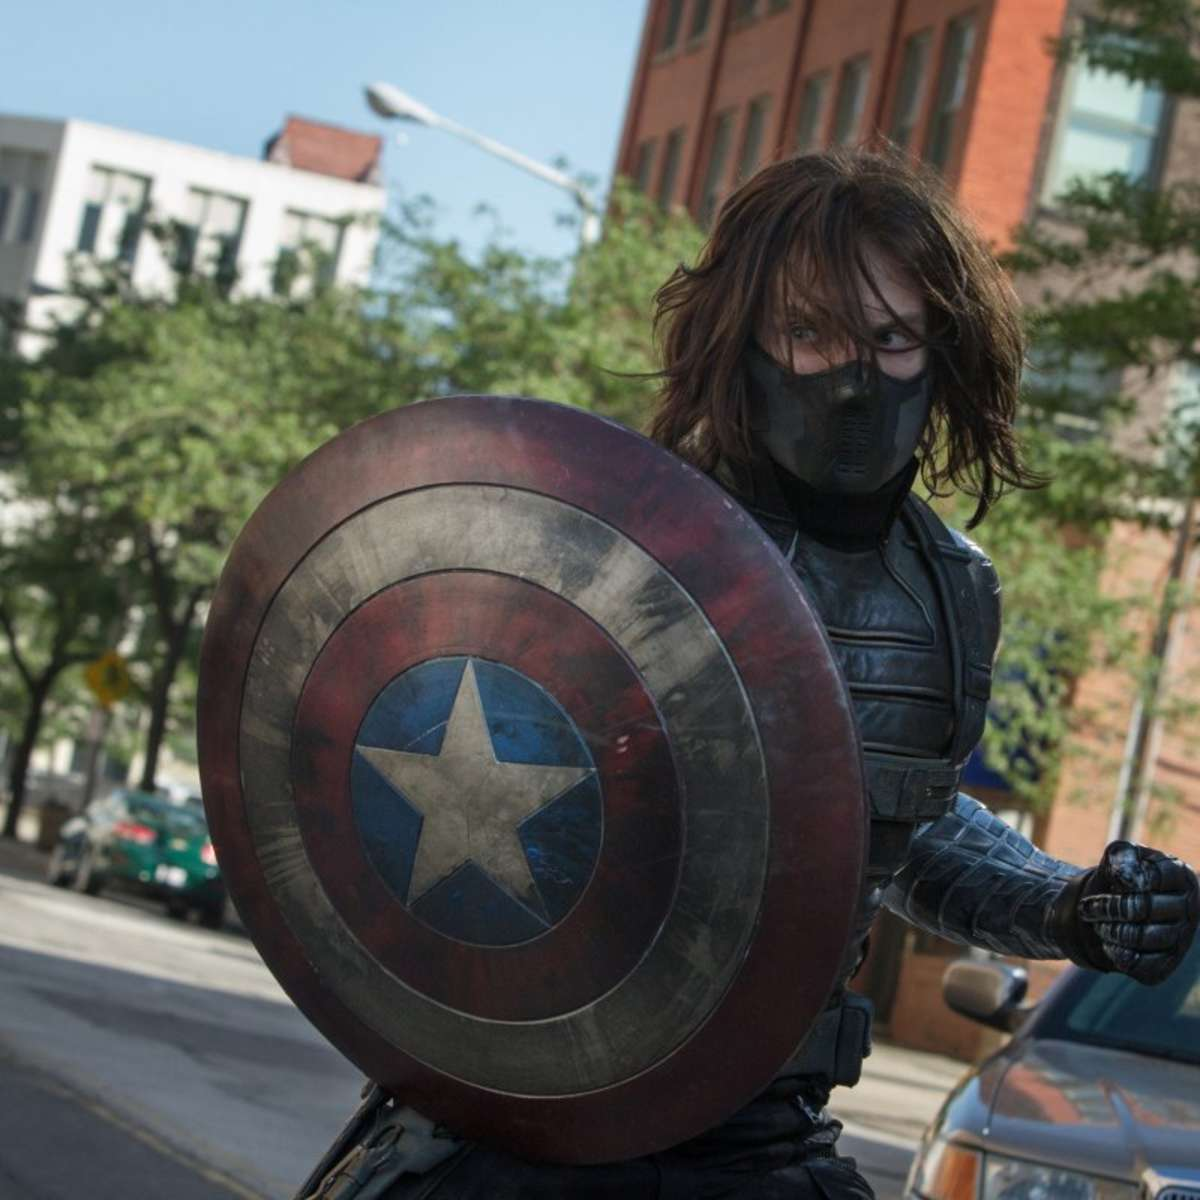 theyll-be-fending-off-this-guy-the-winter-soldier.jpg